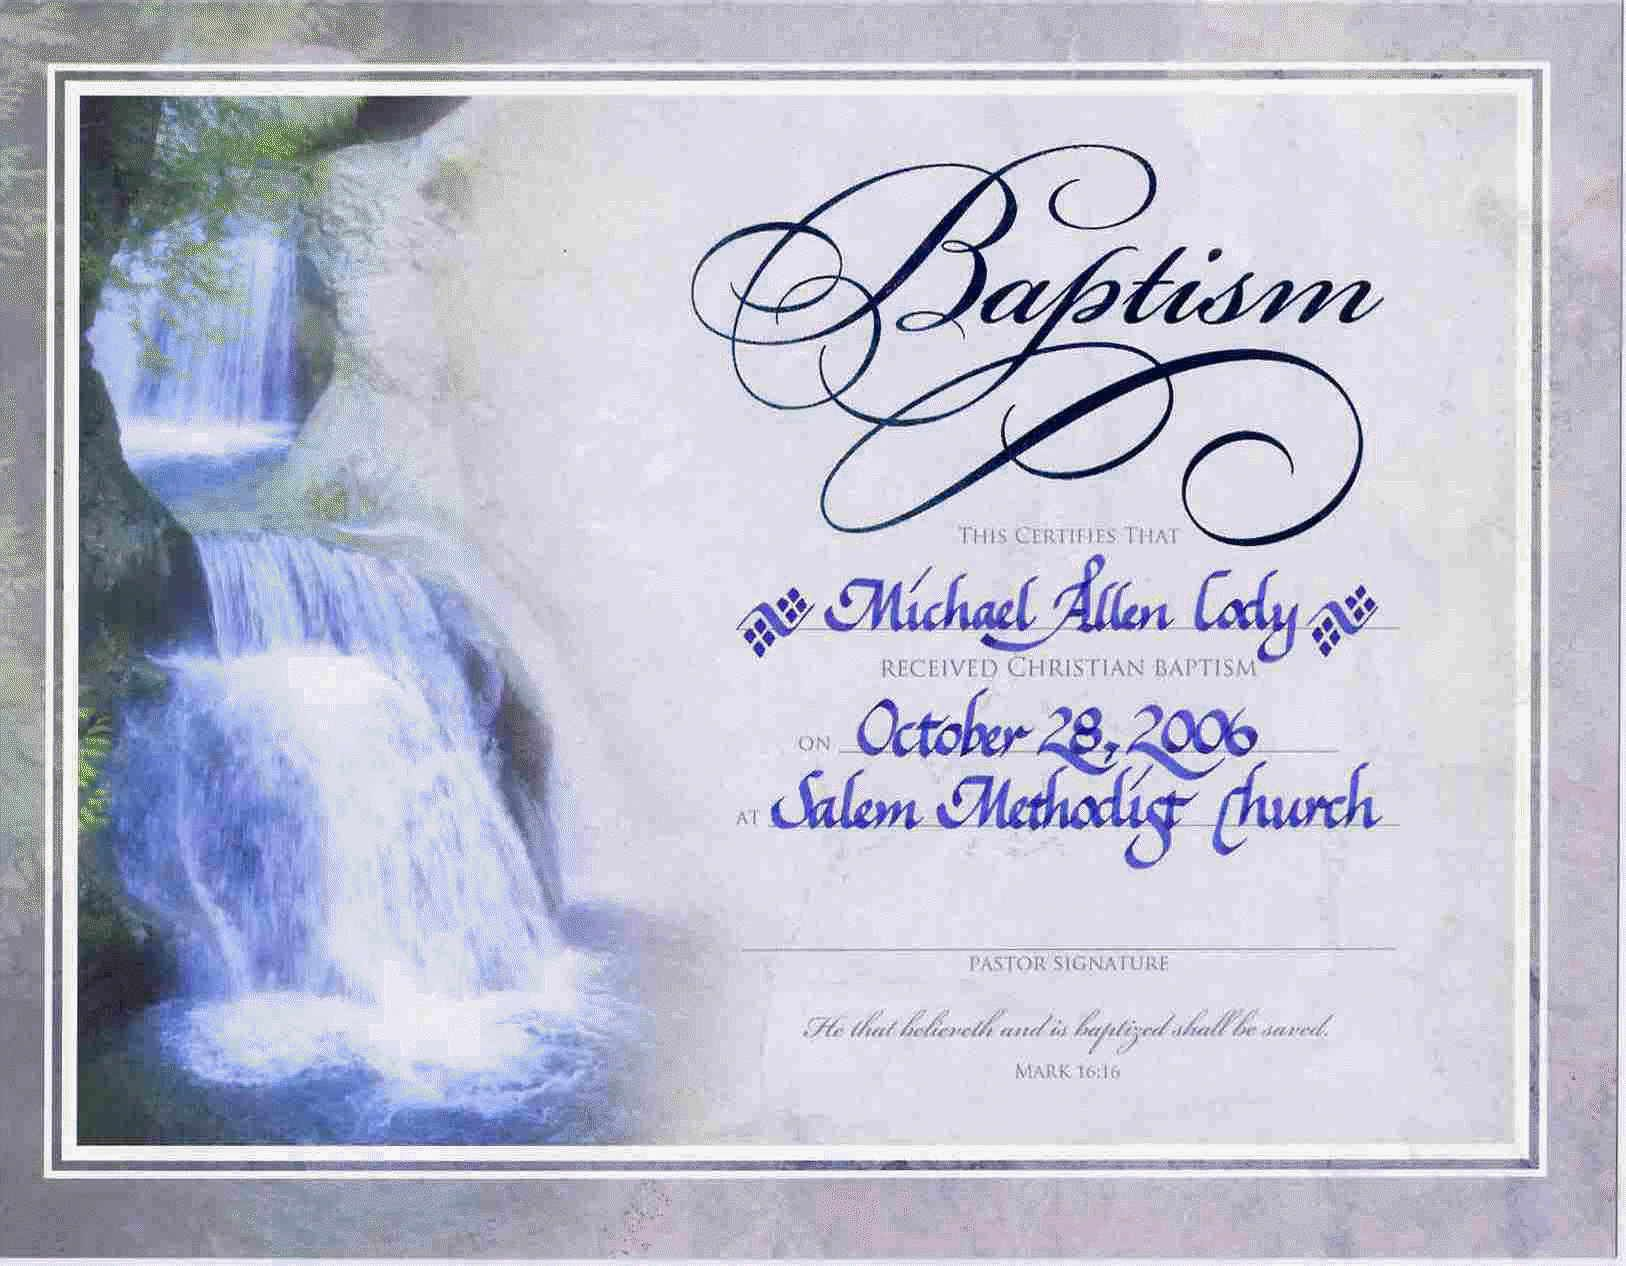 free water baptism certificate template - water baptism certificate templateencephaloscom